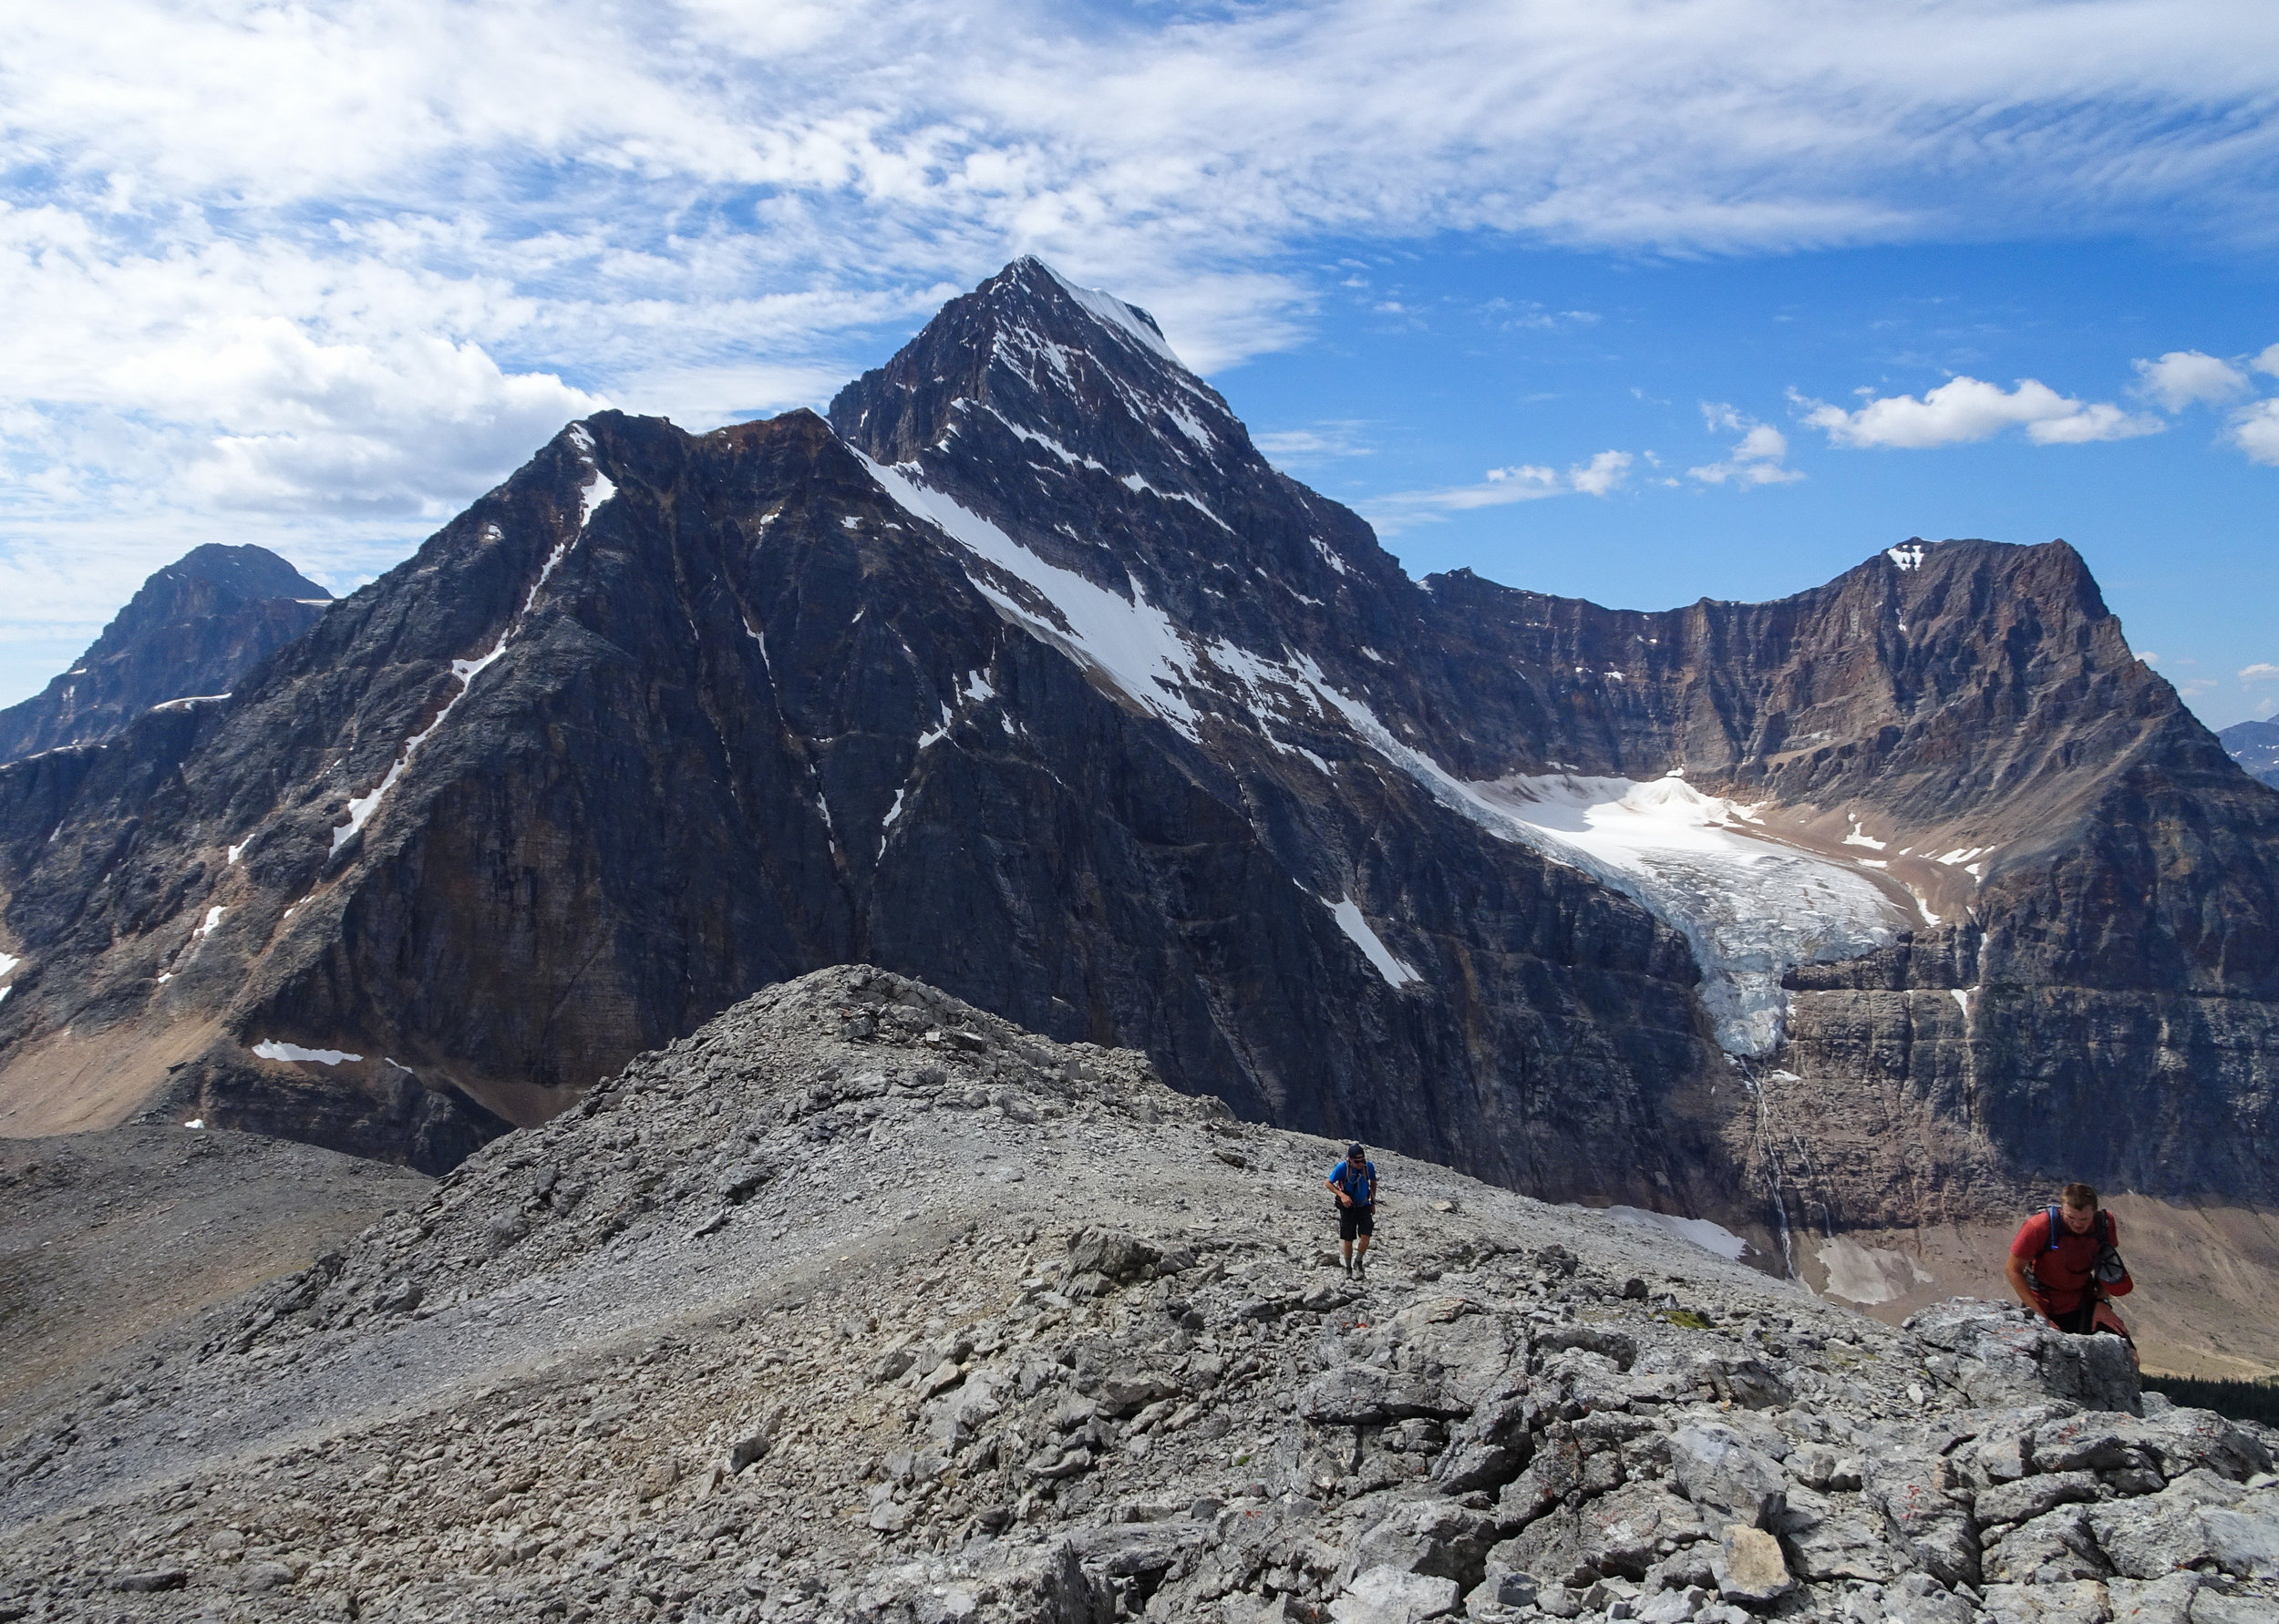 View of Mount Edith Cavell and Angel Glacier